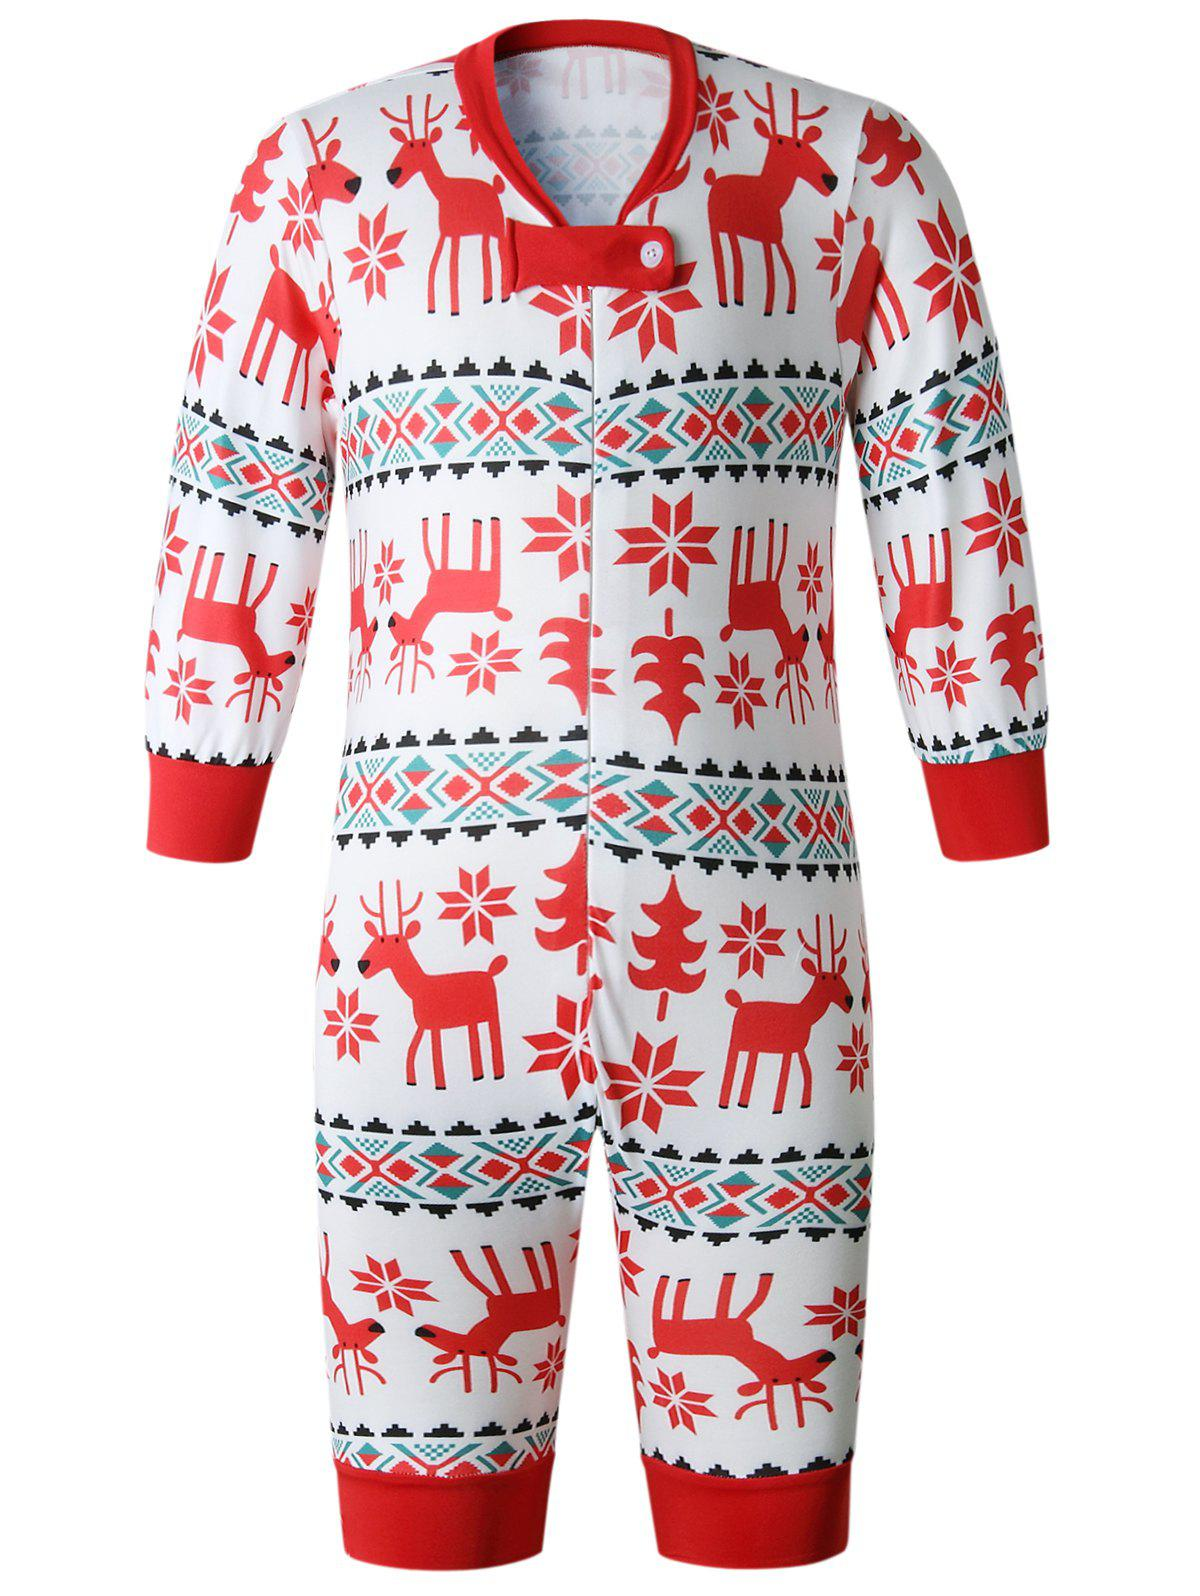 Buy Christmas Long Sleeves Casual Flower Print Family Pajama Sets